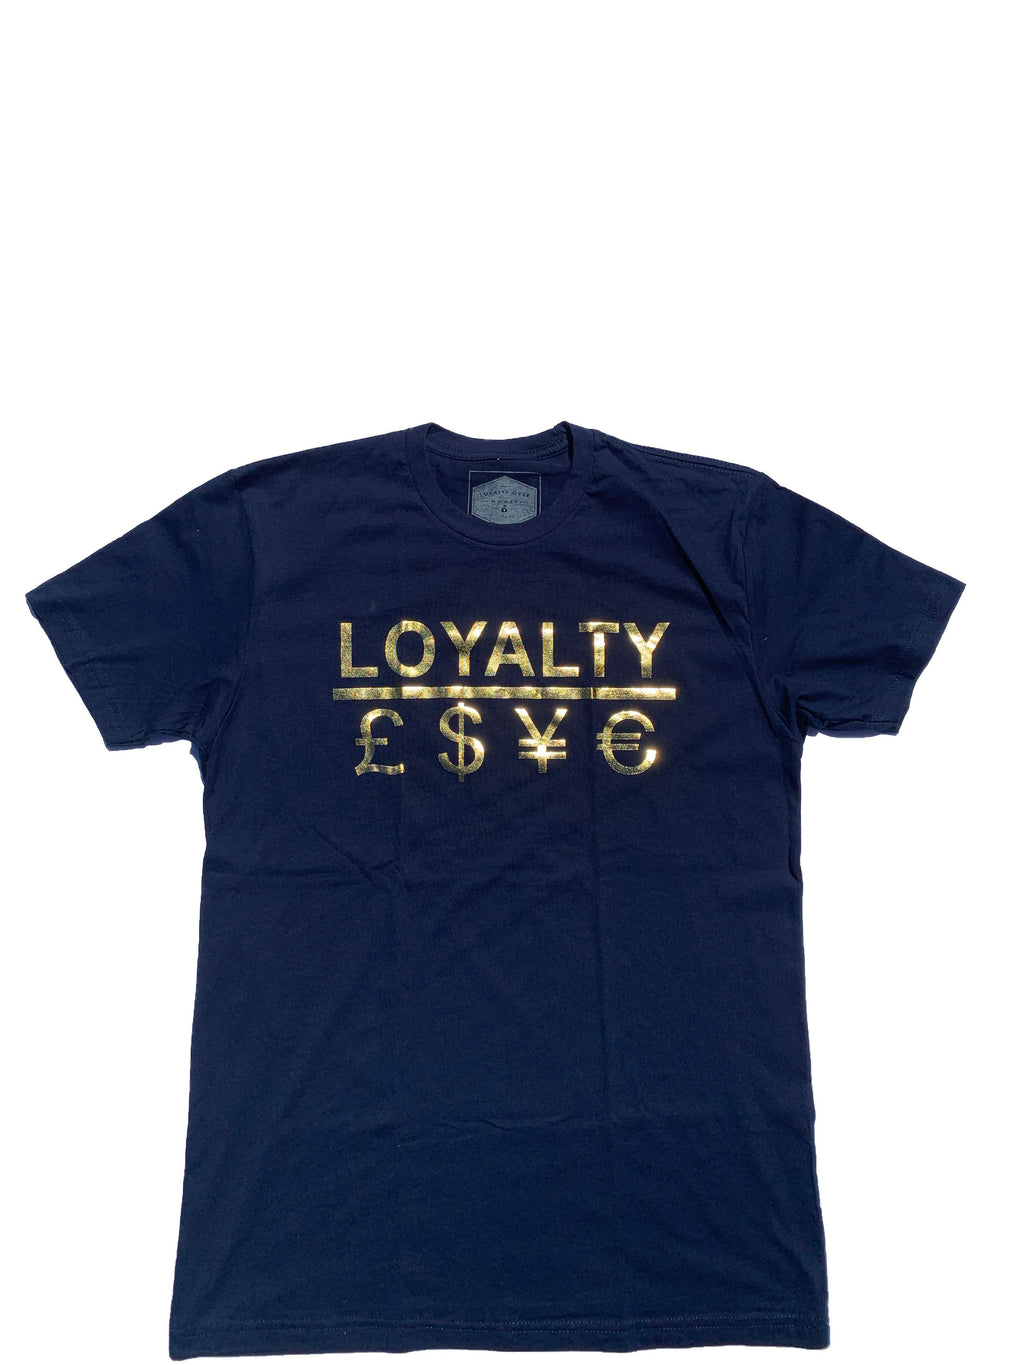 LOYALTY OVER CURRENCY SHIRTS